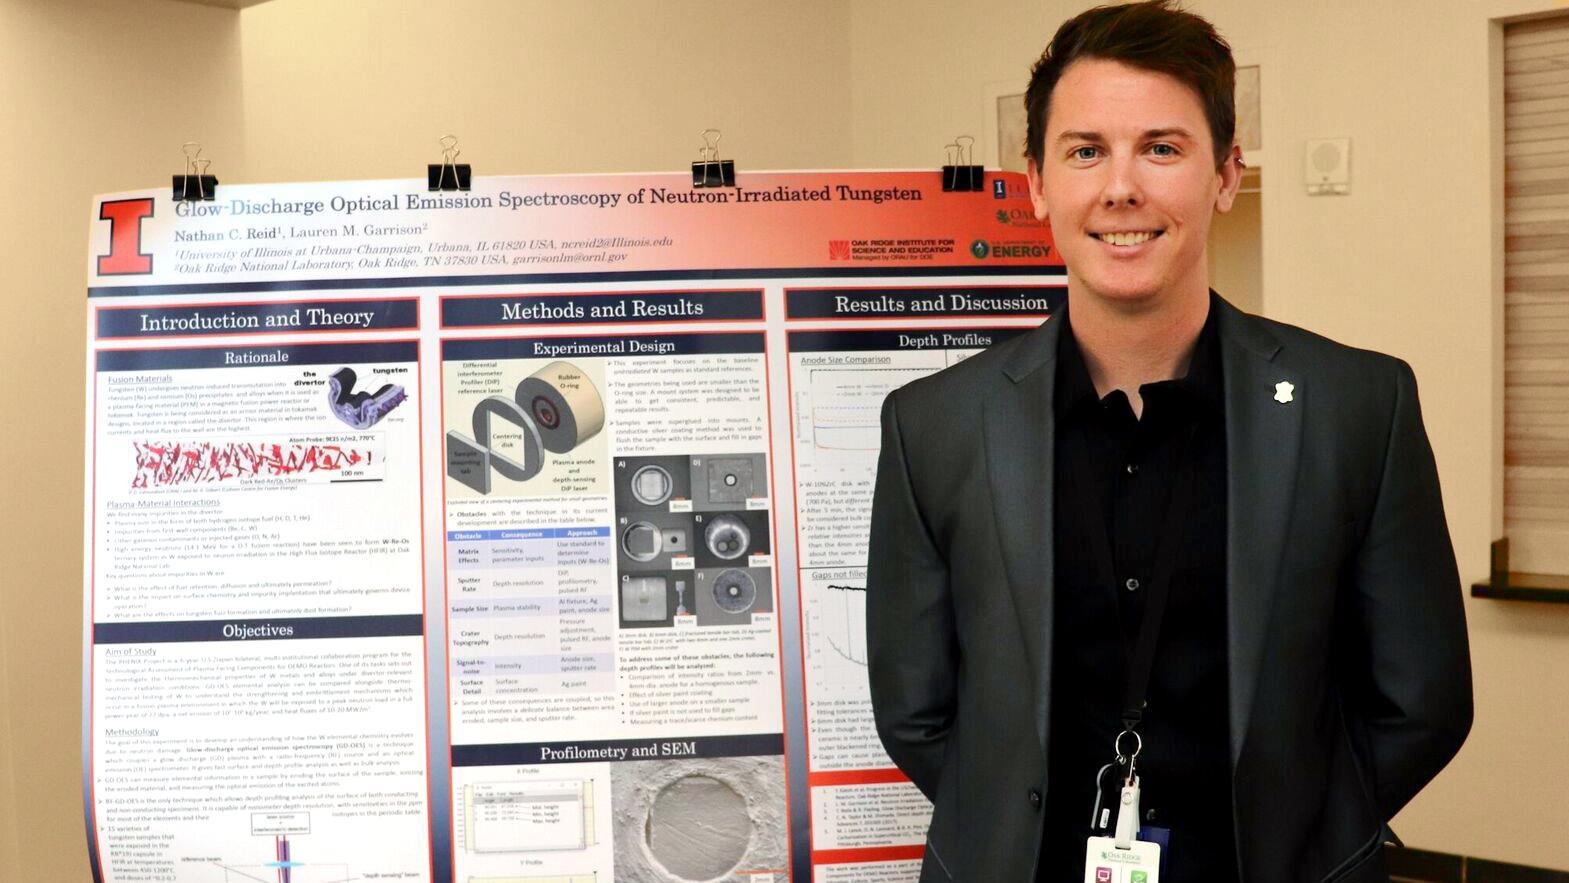 NPRE graduate student wins First Place in ORNL poster session